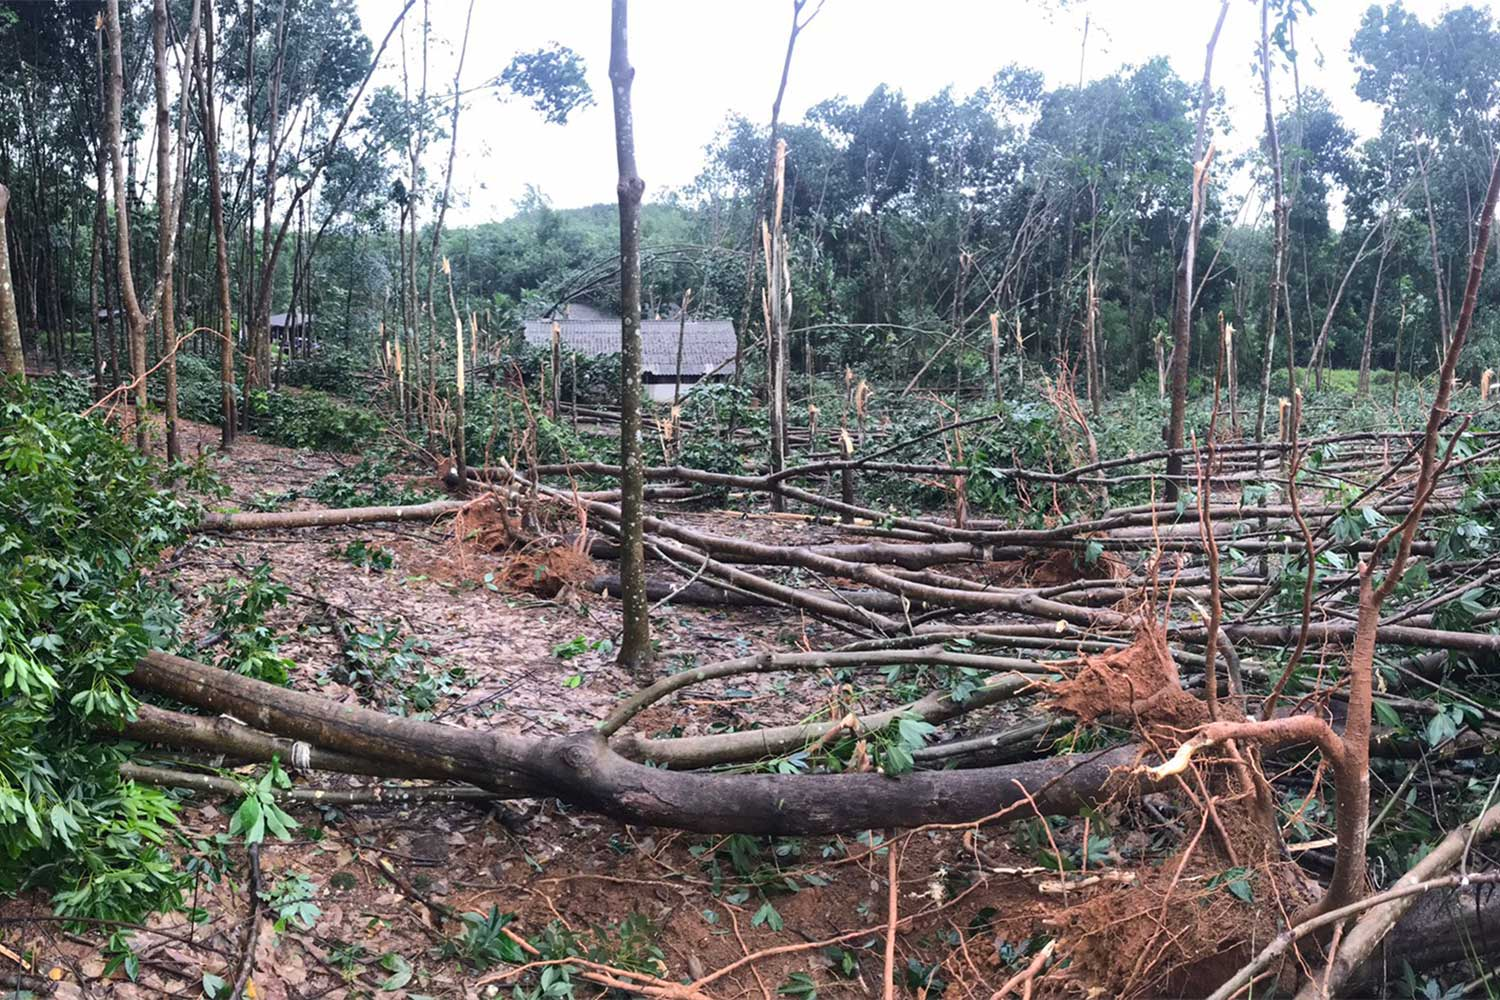 Many rubber trees are brought down by a whirlwind in Bo Rai district of Trat on Monday evening. Four houses were damaged. No injuries were reported. (Photo by Jakkrit Waewkhraihong)